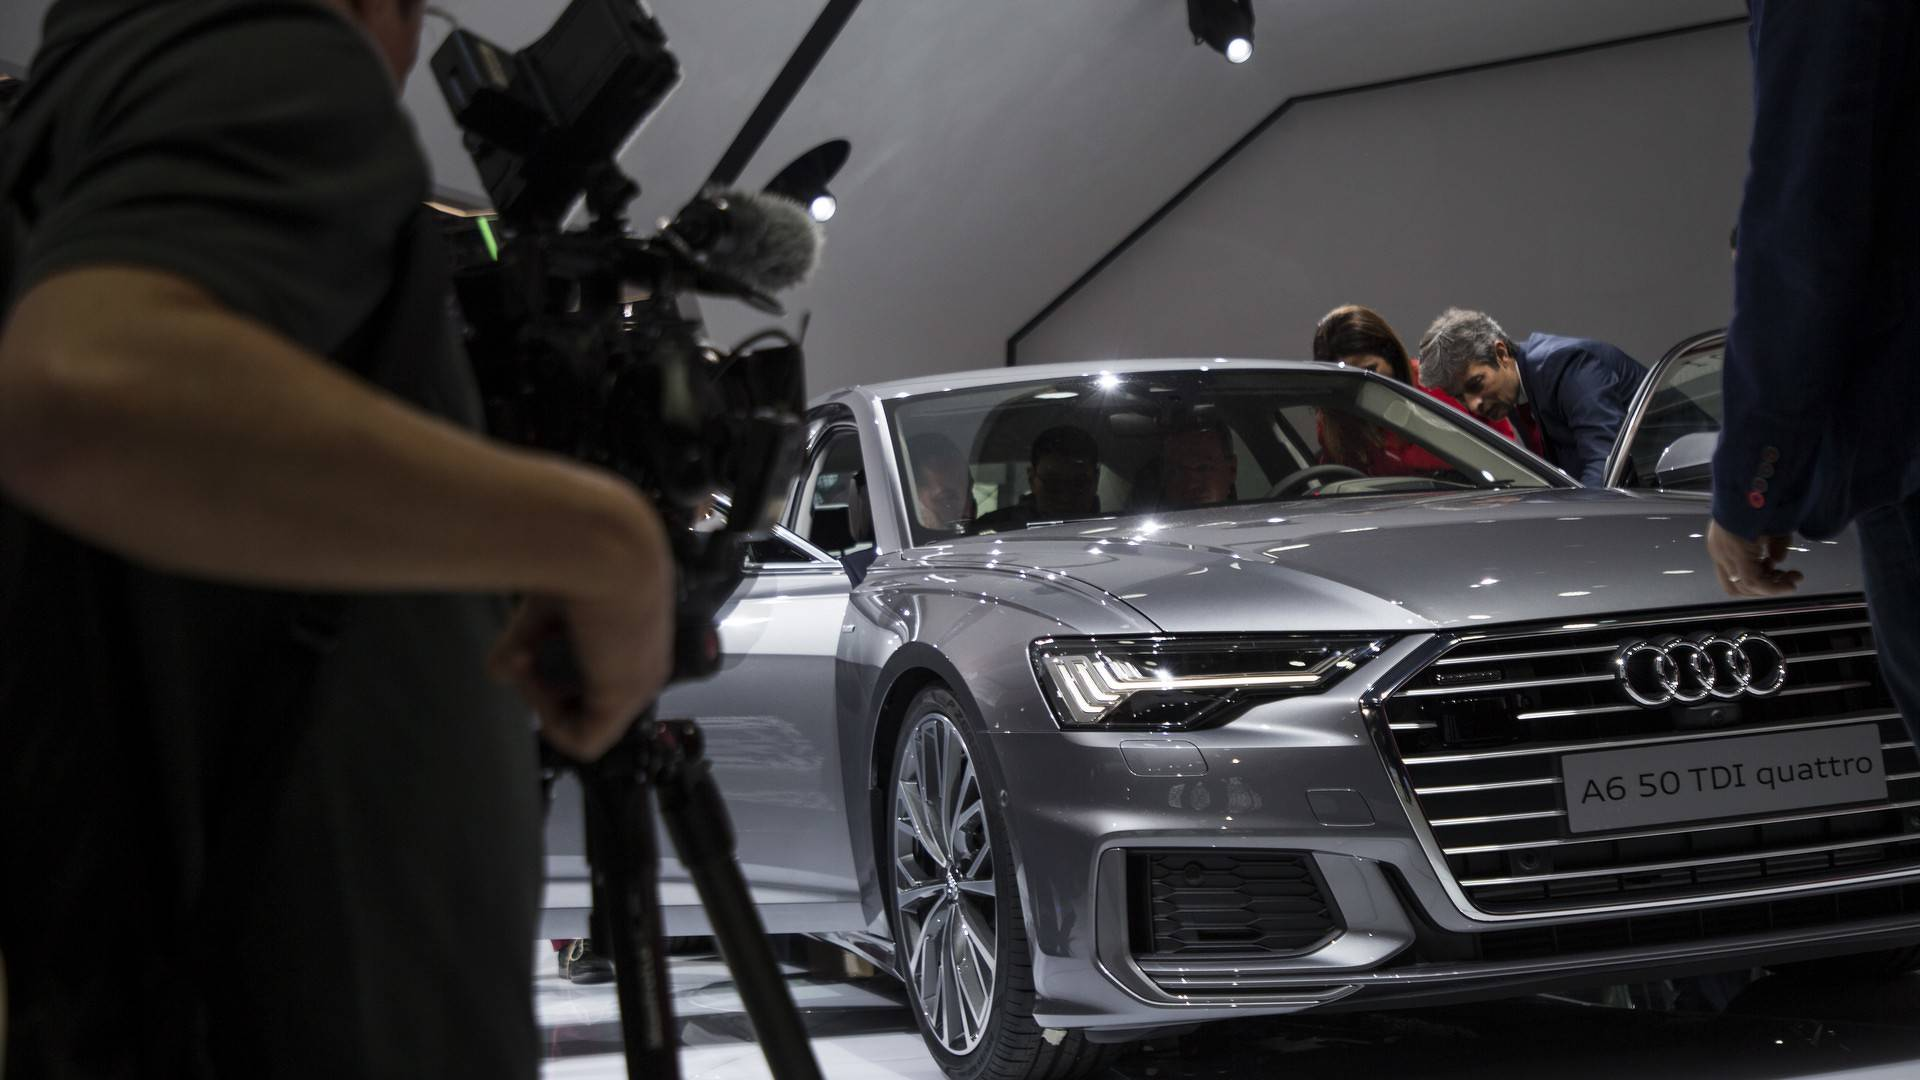 2019 Audi A6 Live From Geneva Motor Show Audi A Exclusive on porsche panamera exclusive, volkswagen phaeton exclusive, citroen c5 exclusive, citroen c3 exclusive, audi s4 exclusive, amc concord exclusive, porsche cayenne exclusive, porsche boxster exclusive,